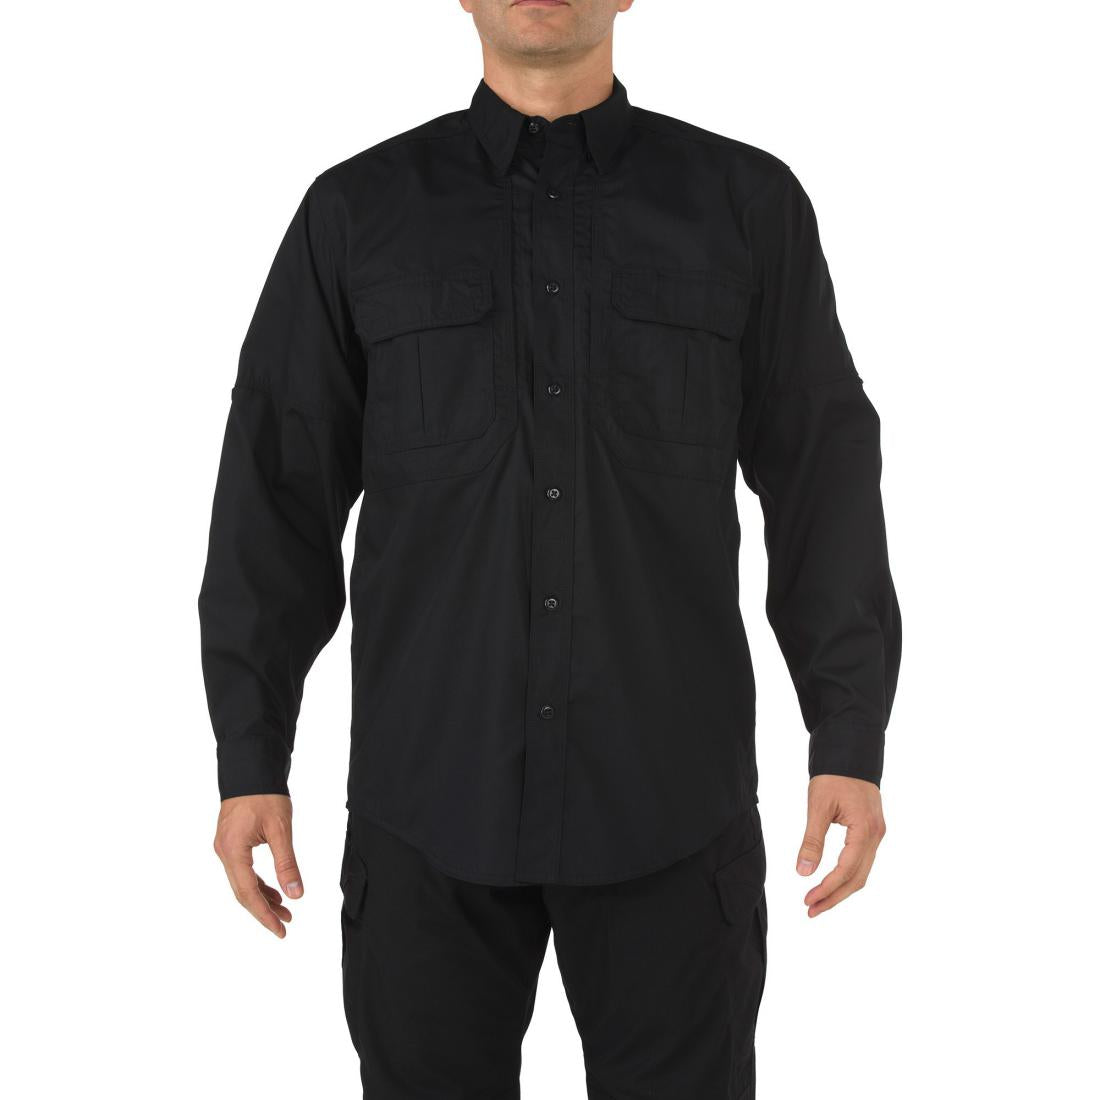 5.11 Tactical 72175 Men Taclite Pro Long Sleeve Shirt Black